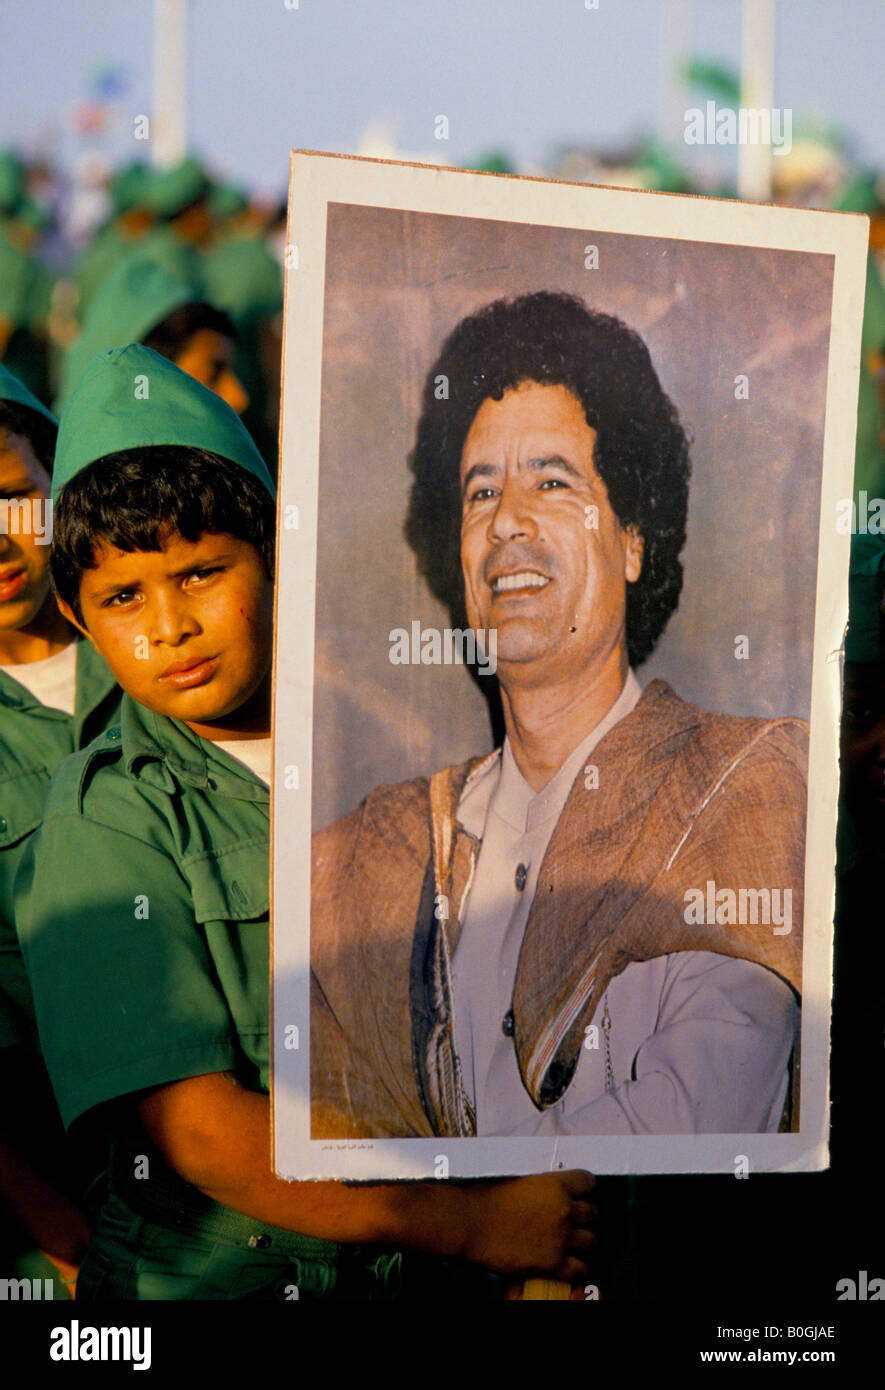 A boy holding a poster of Gaddafi at the 20th anniversary celebration of the revolution, Tripoli, Libya. - Stock Image